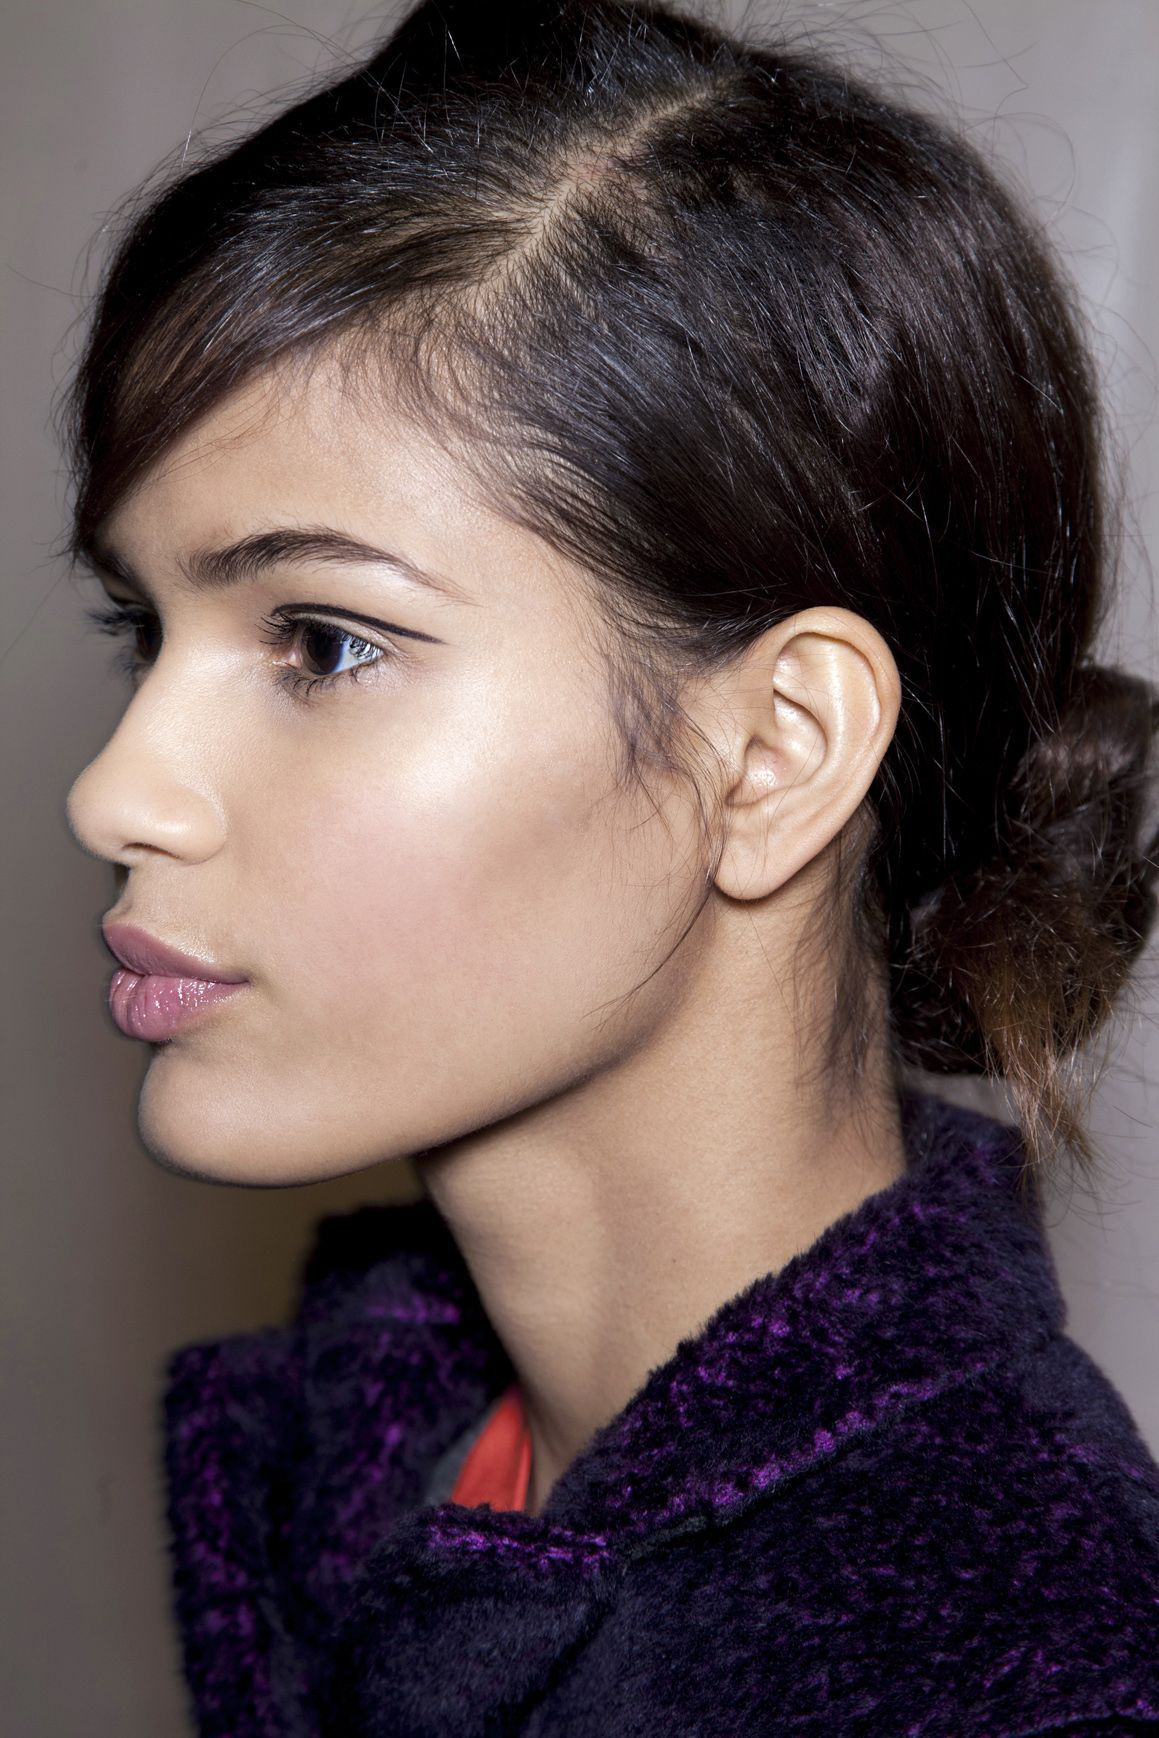 """<p>Unless its sleeked back, a bun without texture is just kind of sad. And it's that much harder to build on with just-washed hair. At Rag & Bone, Bumble and bumble stylists sought to recreate the greasy look by working <a href=""""https://www.bumbleandbumble.com/hair-styling-products/index.tmpl#1"""" target=""""_blank"""">mists and creams</a> alike into the roots. Since your hair is already dirty, all you have to do is muss things up with a teasing brush and play with the wisps around the hairline.</p>"""